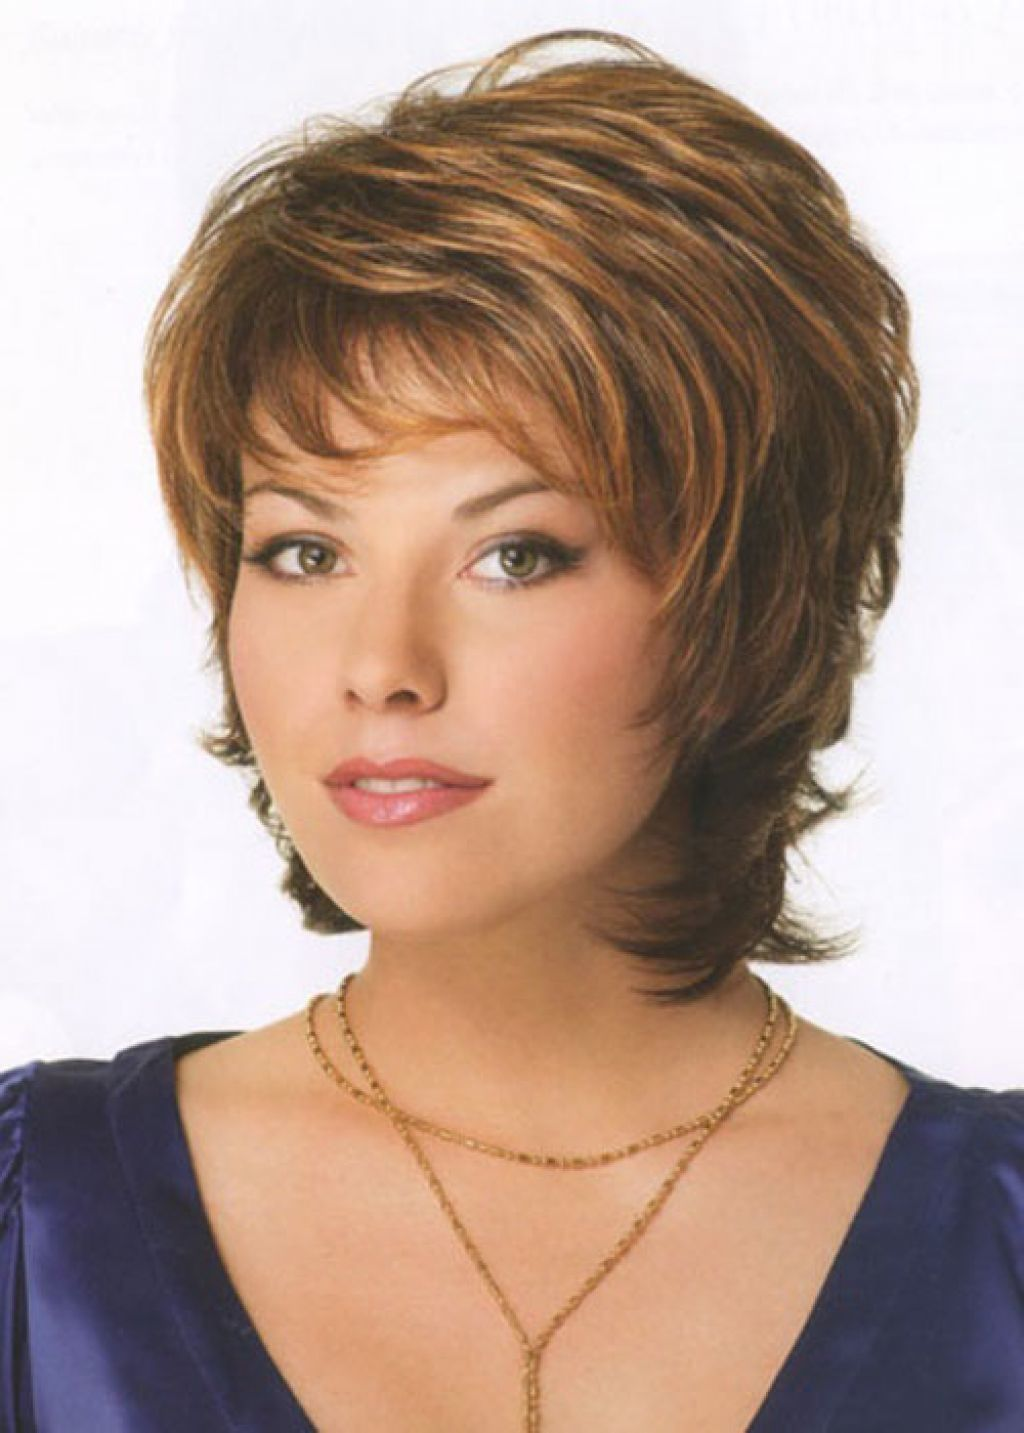 hairstyles for short hair over 65 #hairstyles